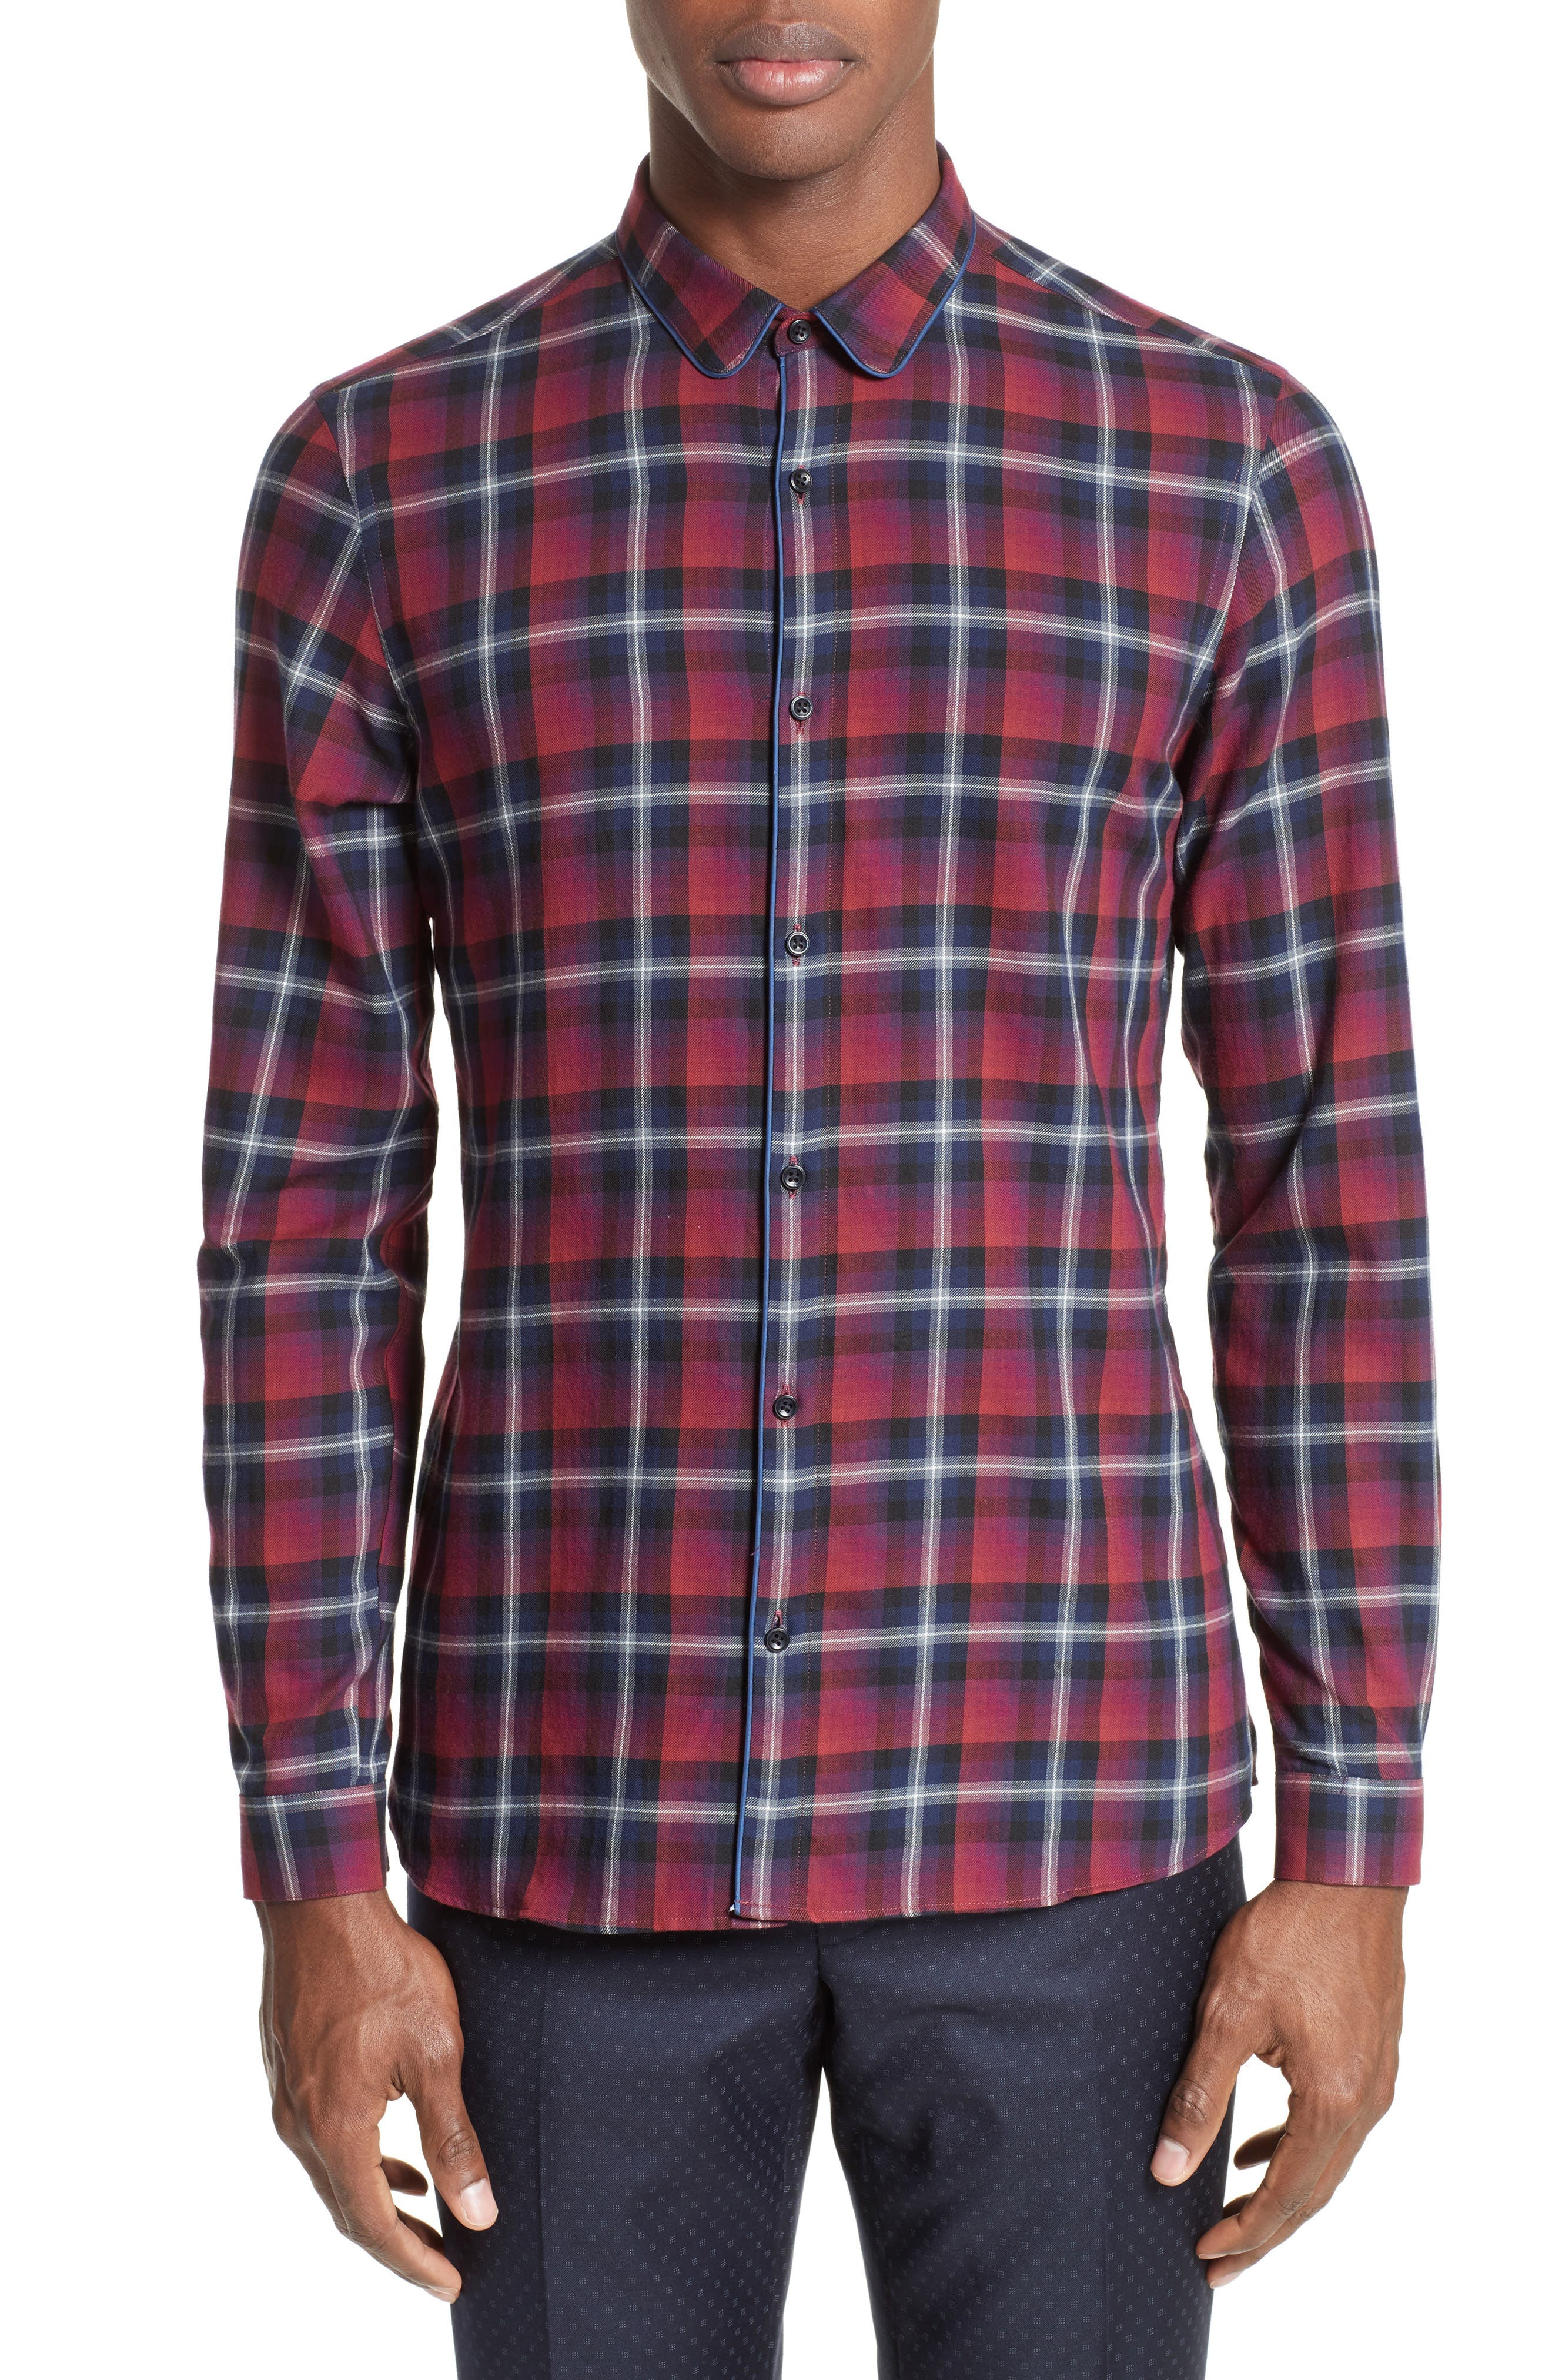 Alternate Image 1 Selected - The Kooples Contrast Piping Plaid Sport Shirt